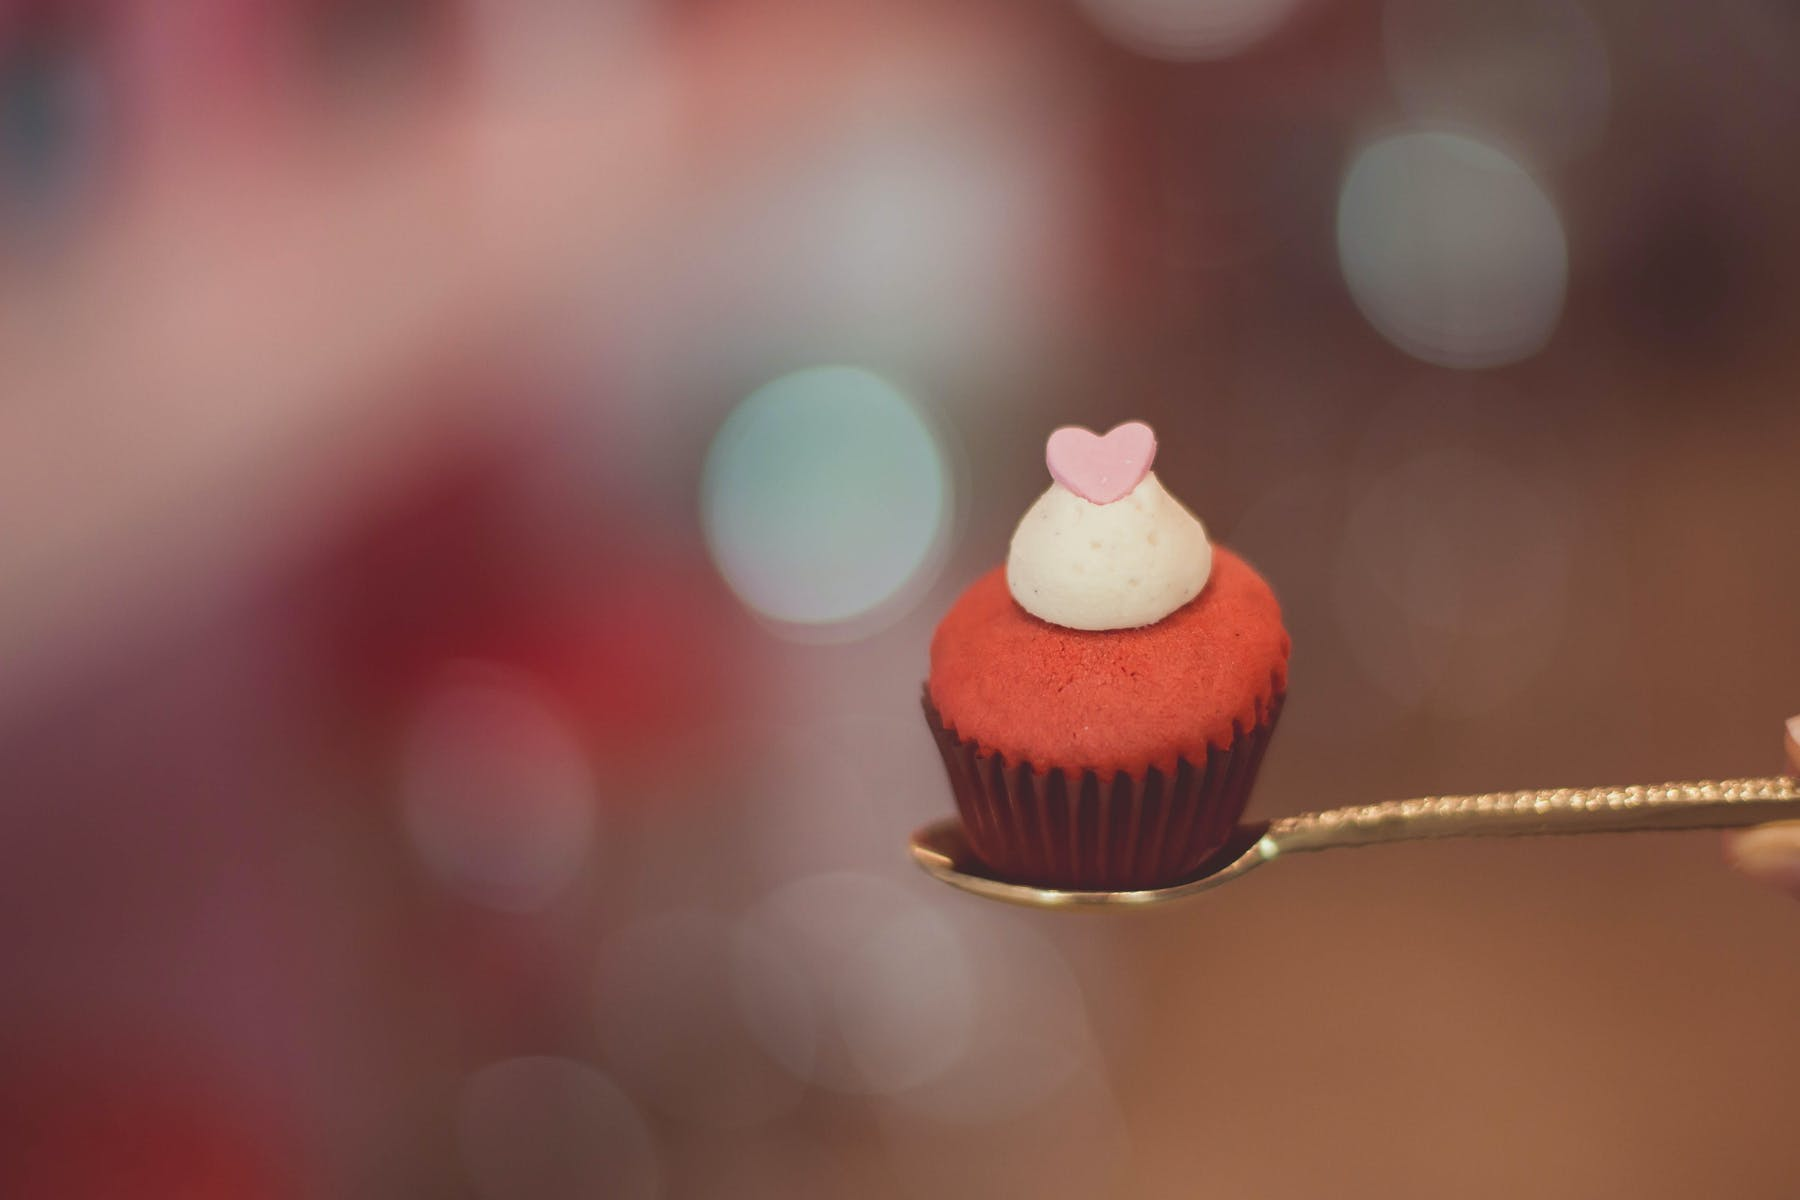 a cupcake sitting on a spoon